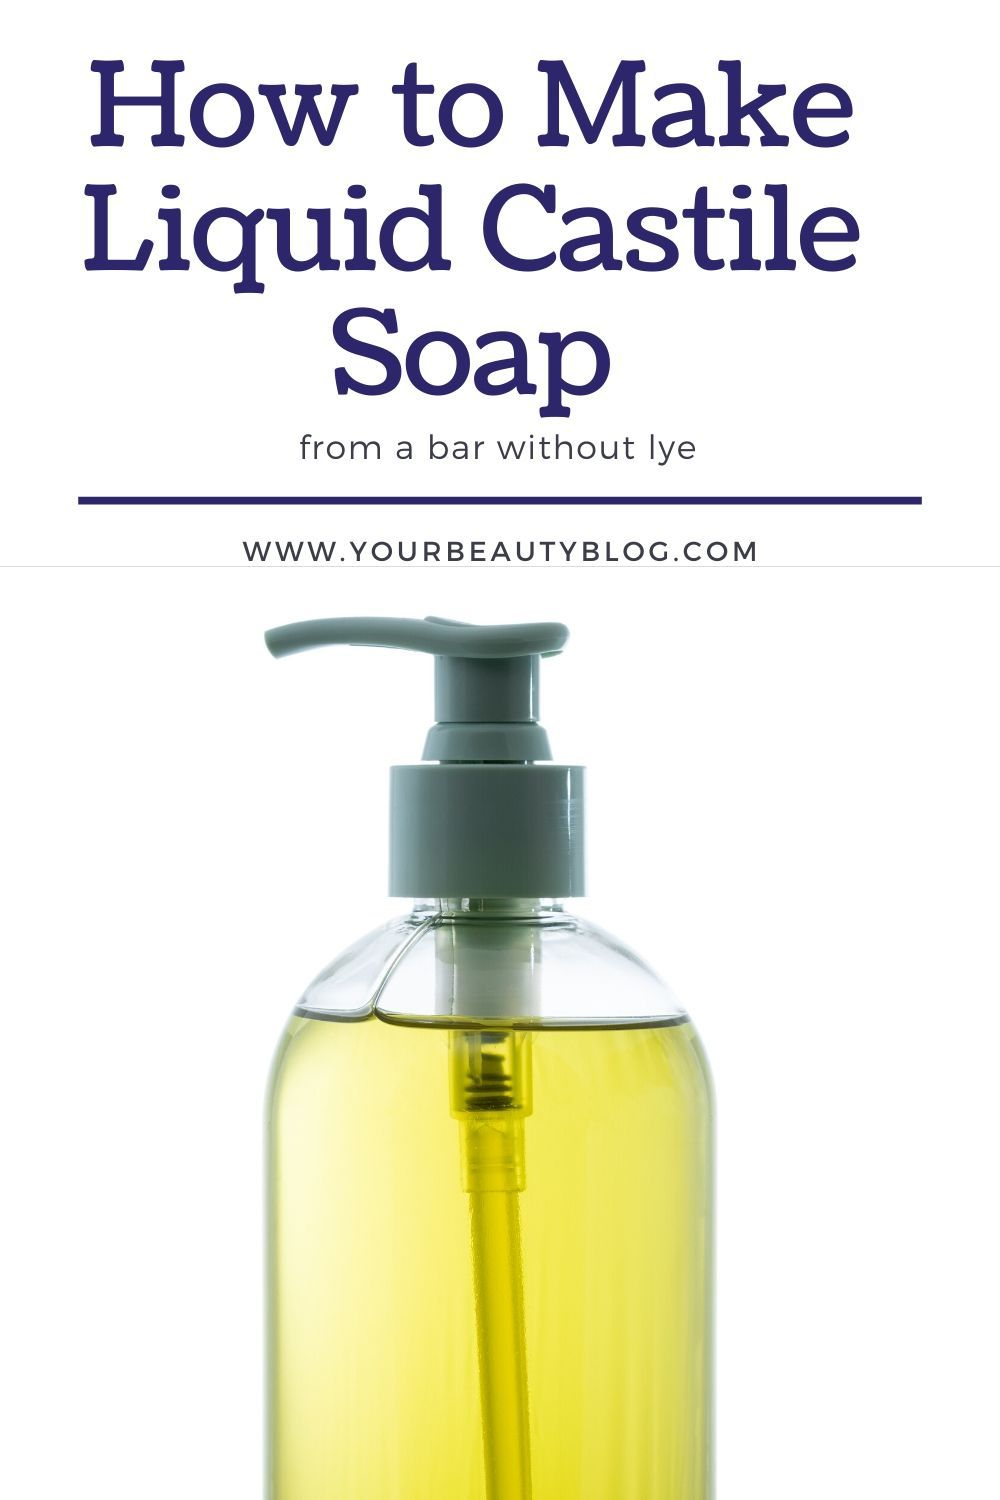 How to Make Liquid Castile Soap Without Lye in 2020